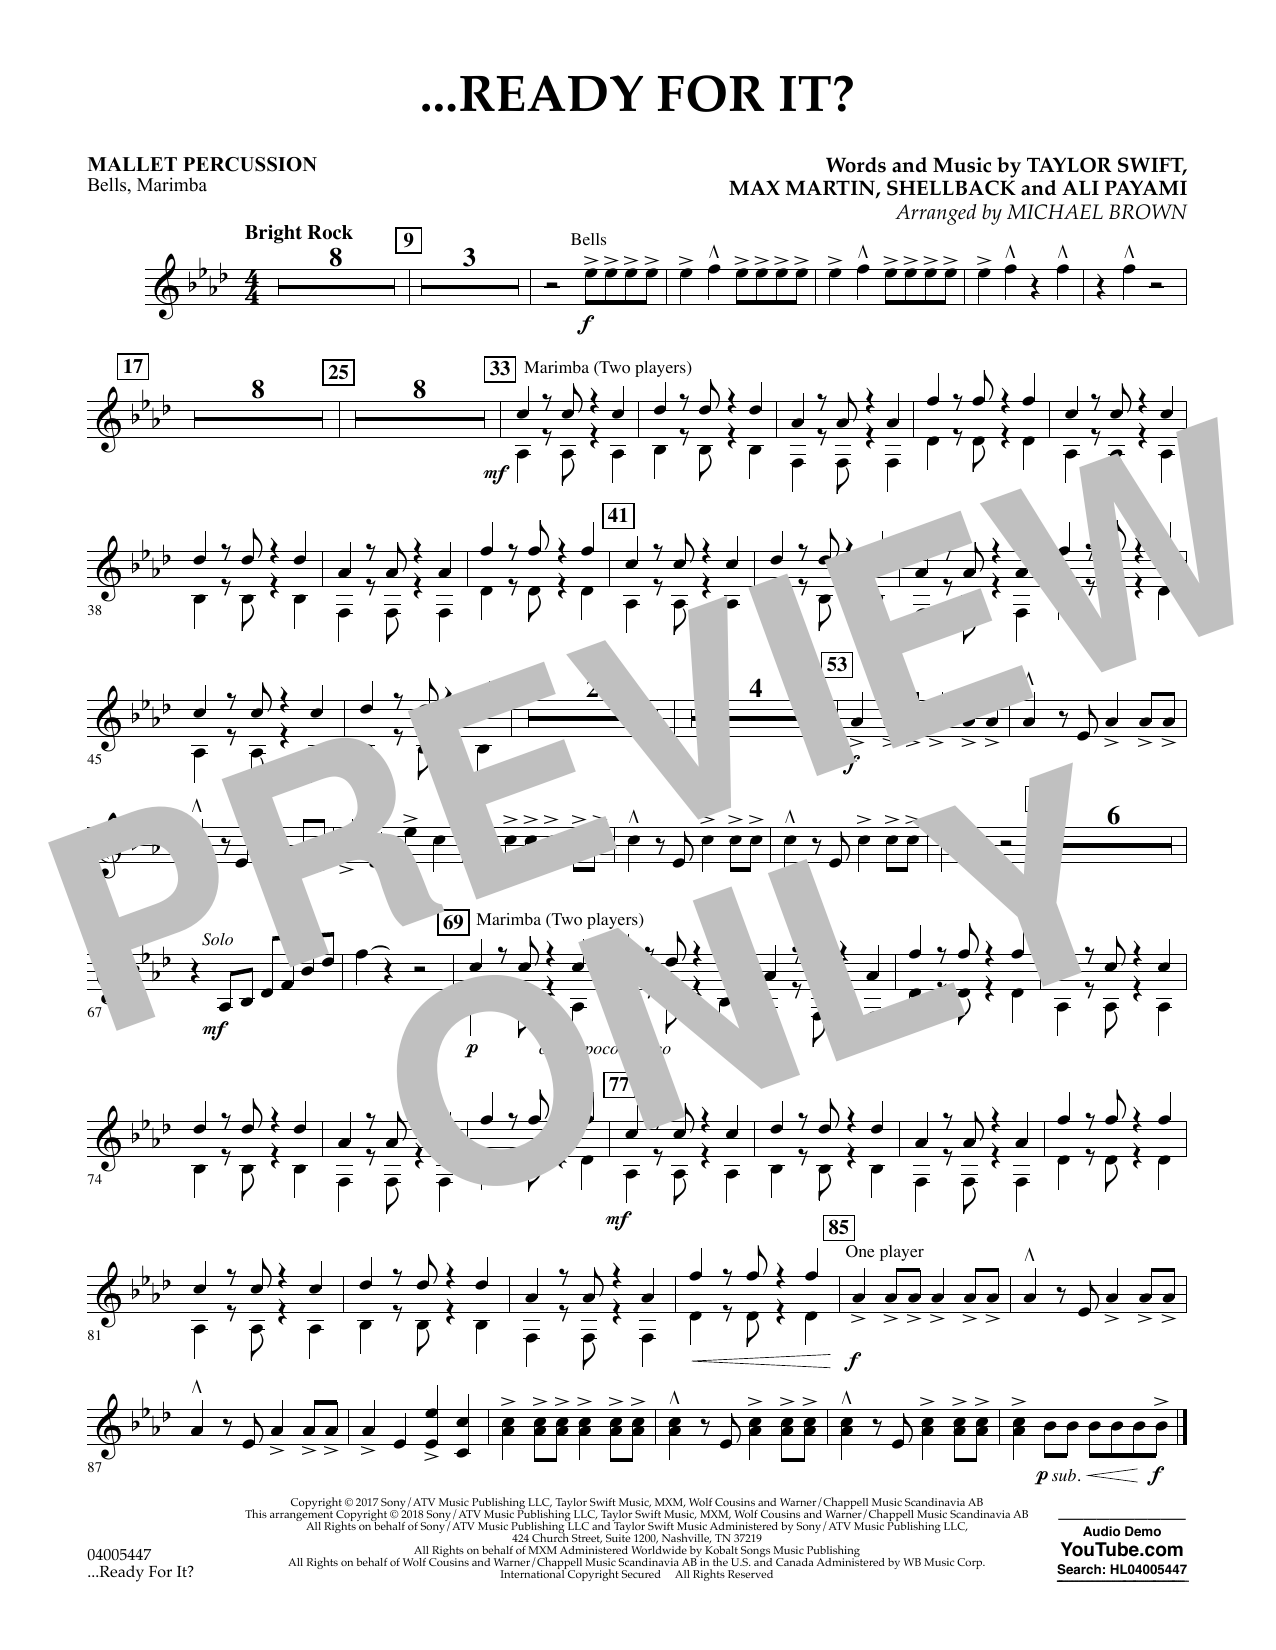 Michael Brown ...Ready for It? - Mallet Percussion sheet music notes and chords. Download Printable PDF.